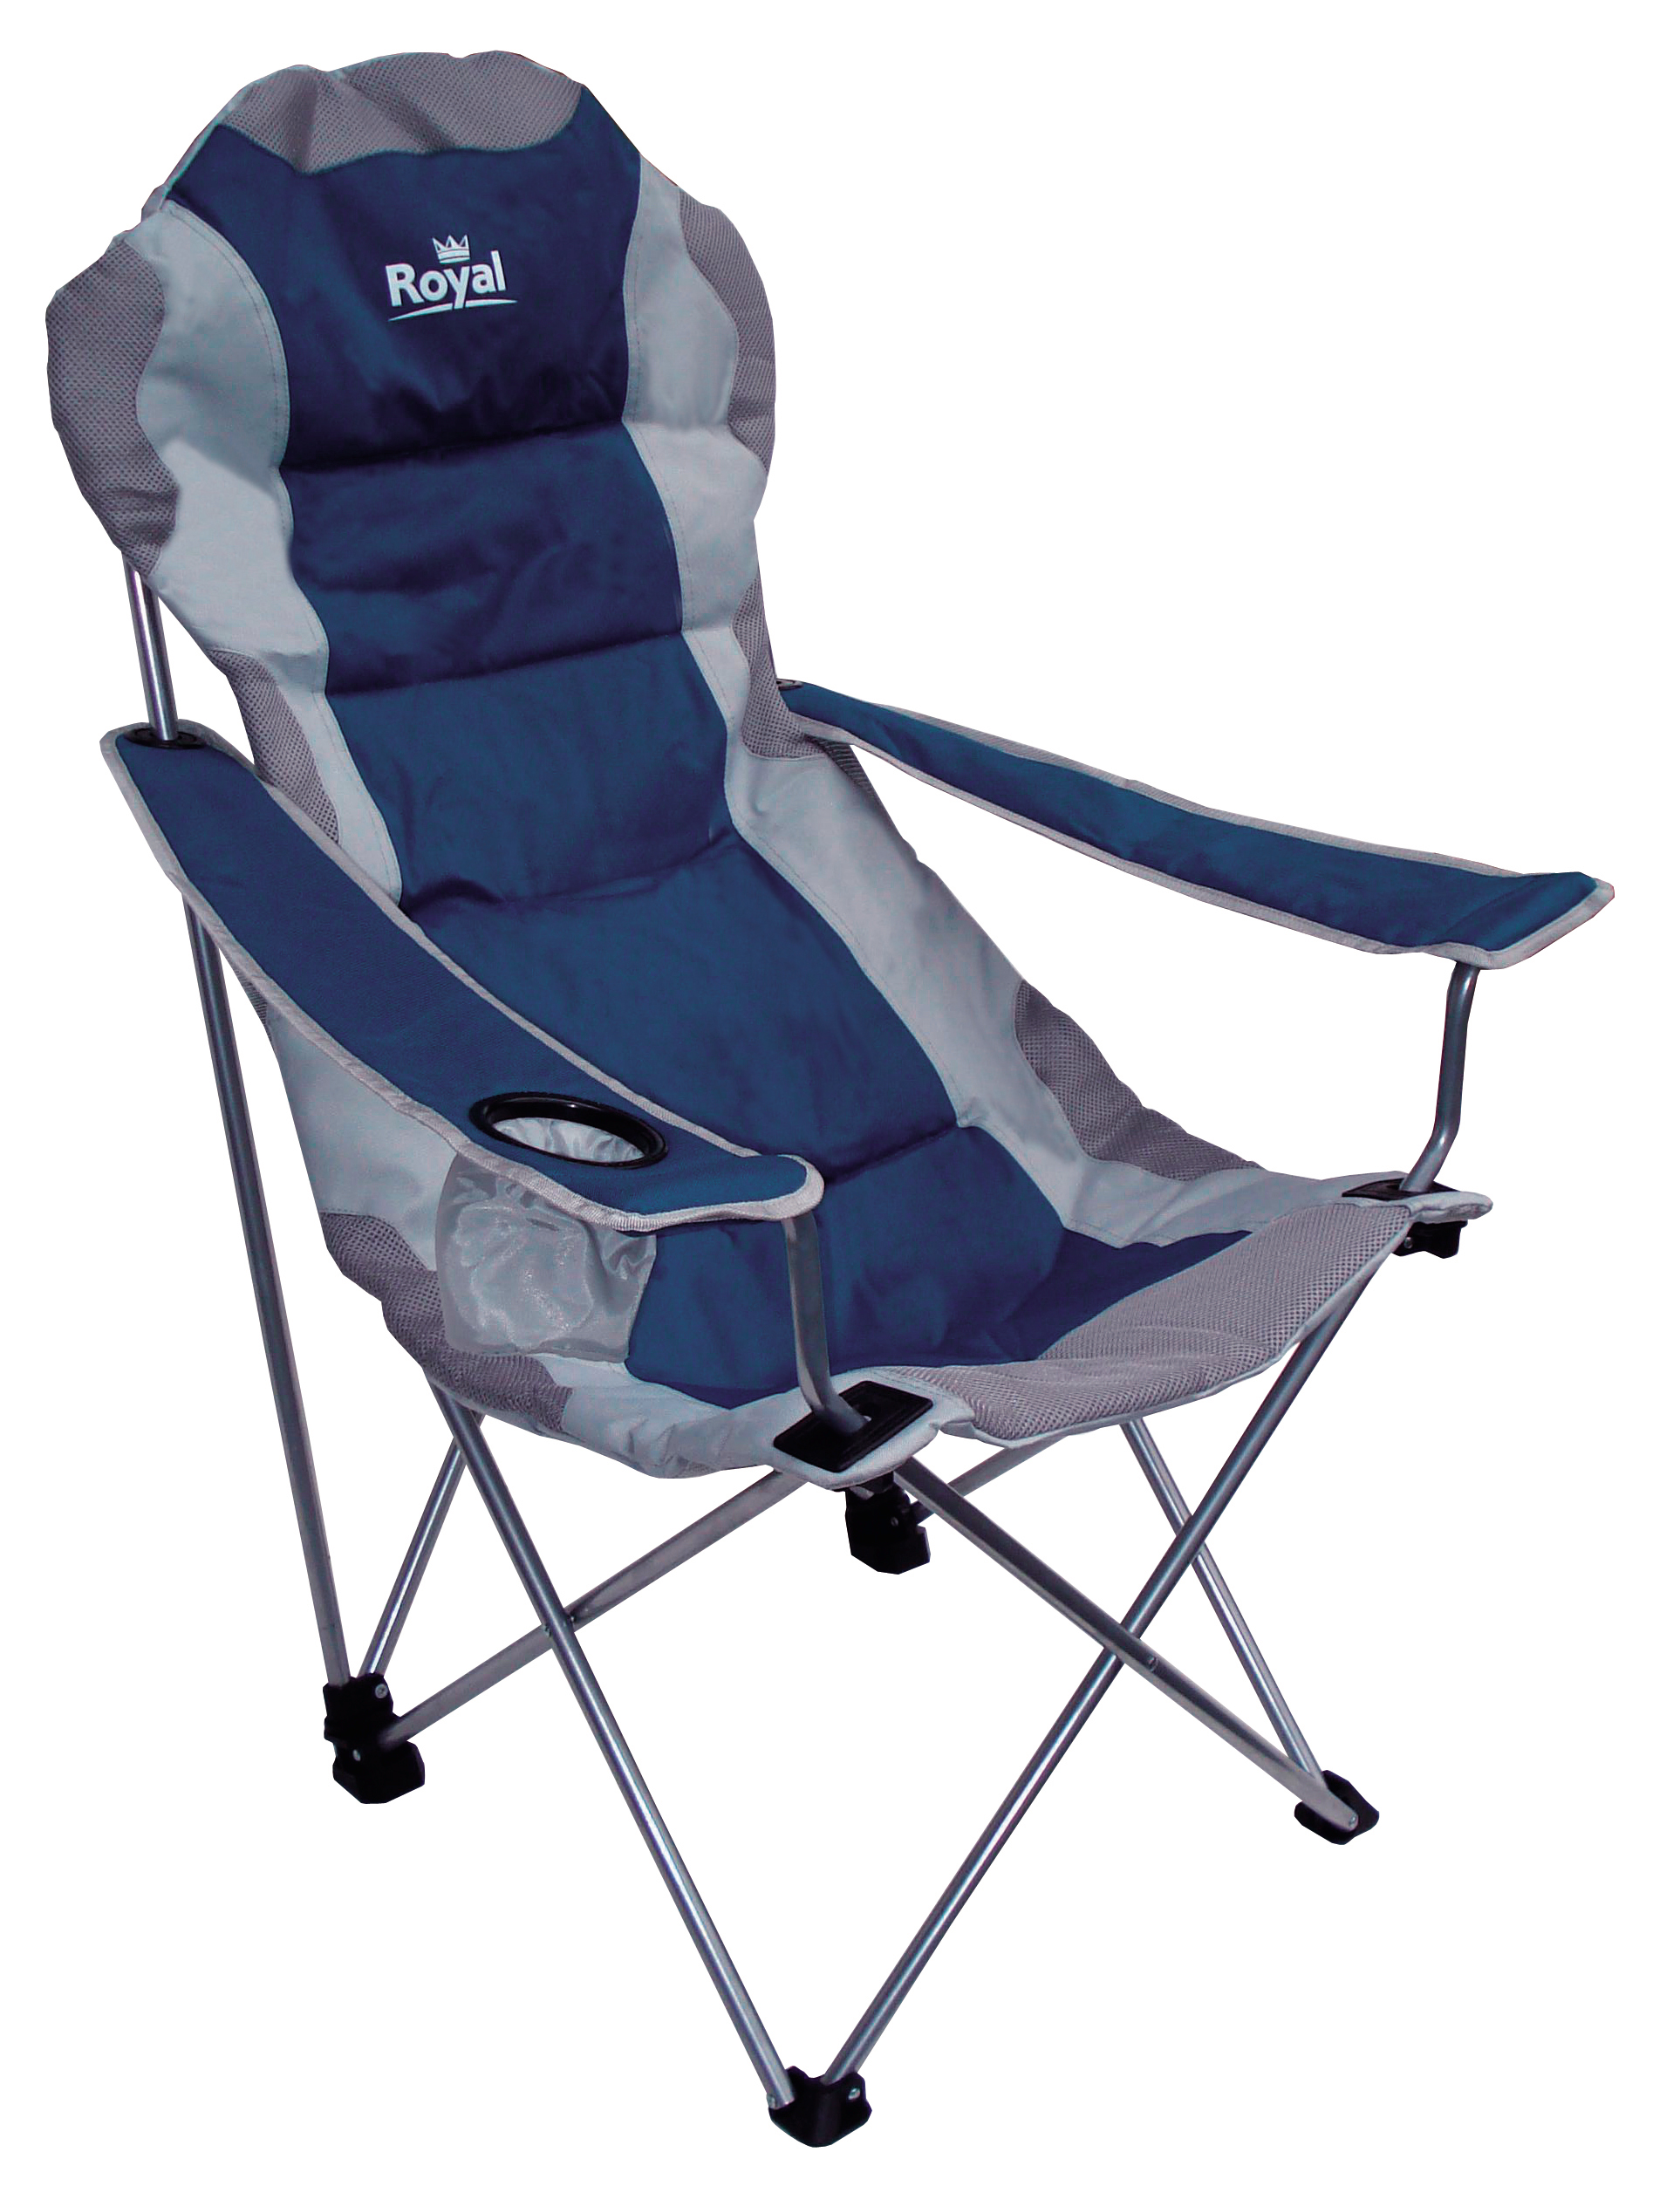 Blue Folding Chairs Royal Adjustable Folding Chair 120kg Capacity 3 Position